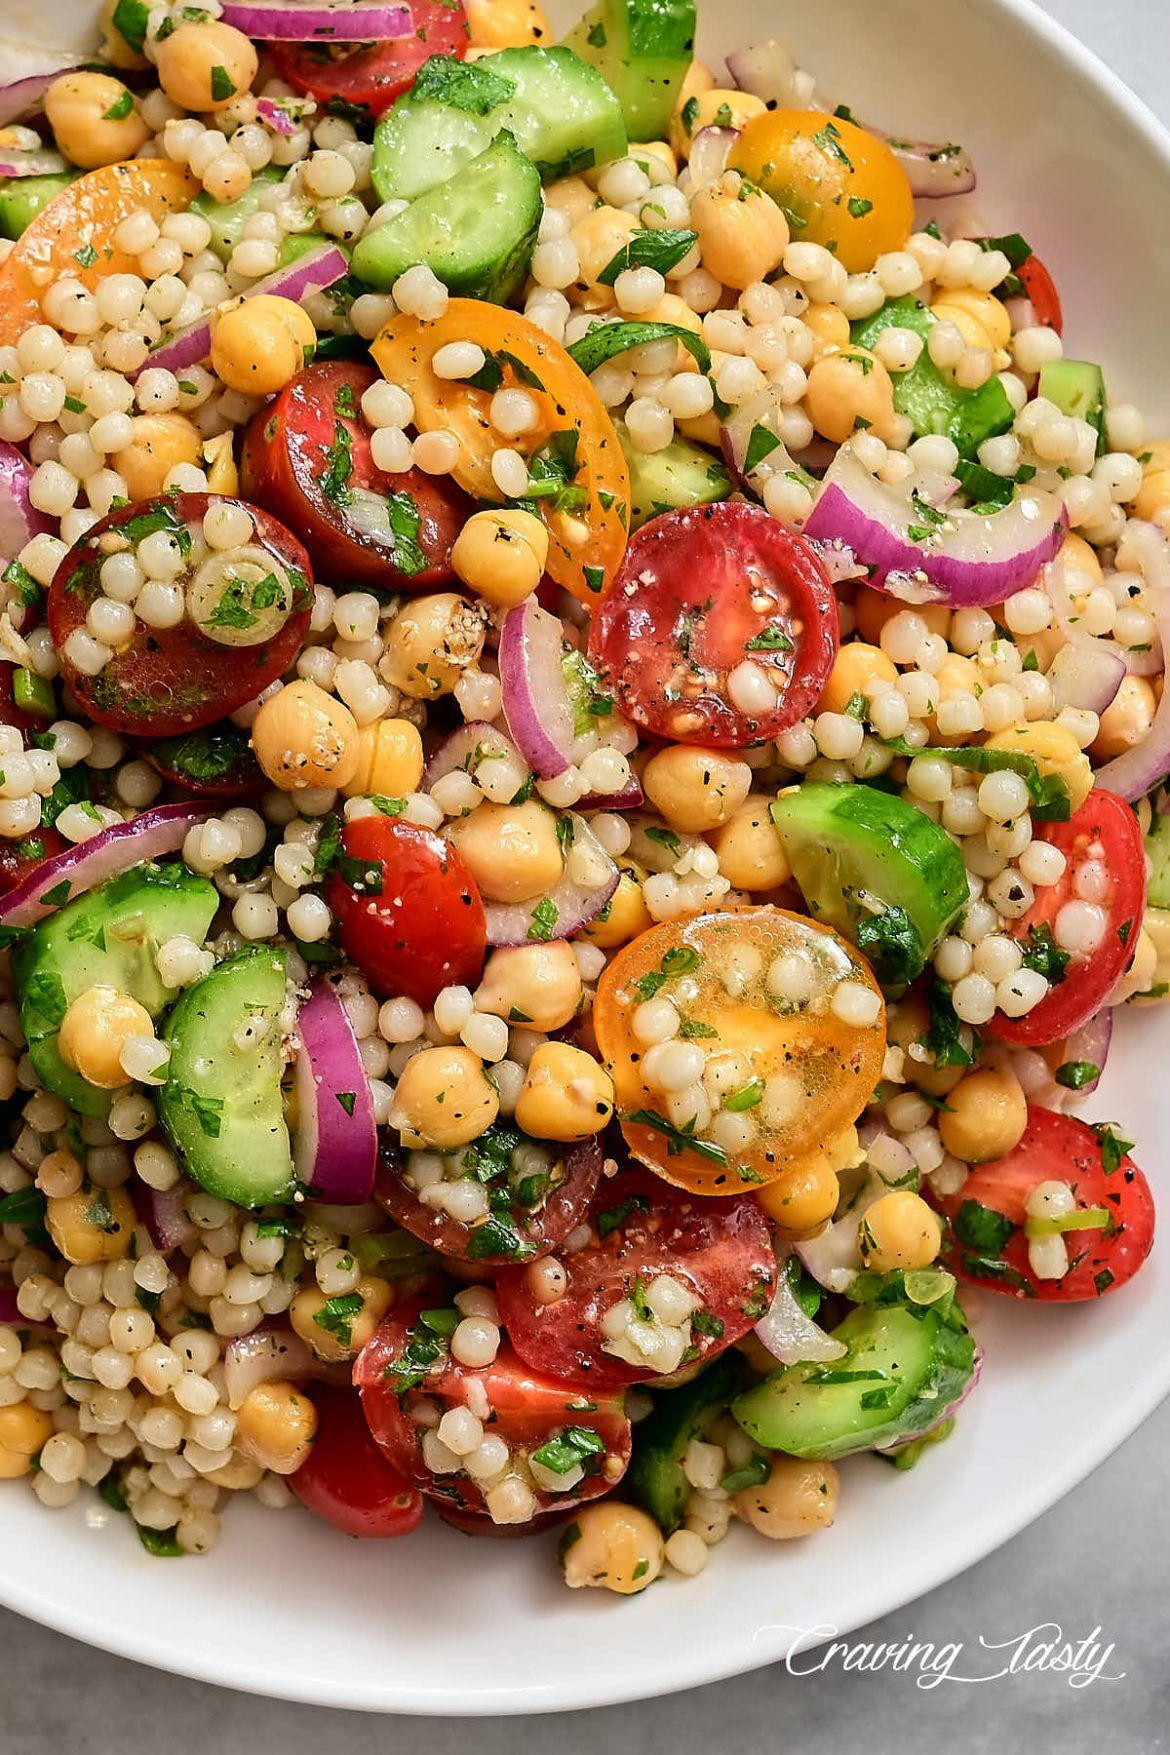 Israeli Couscous Salad Made With Israeli Couscous Also Known As Pearl Or Gourmet Couscous The Bigger V Couscous Recipes Couscous Salad Recipes Gourmet Salad